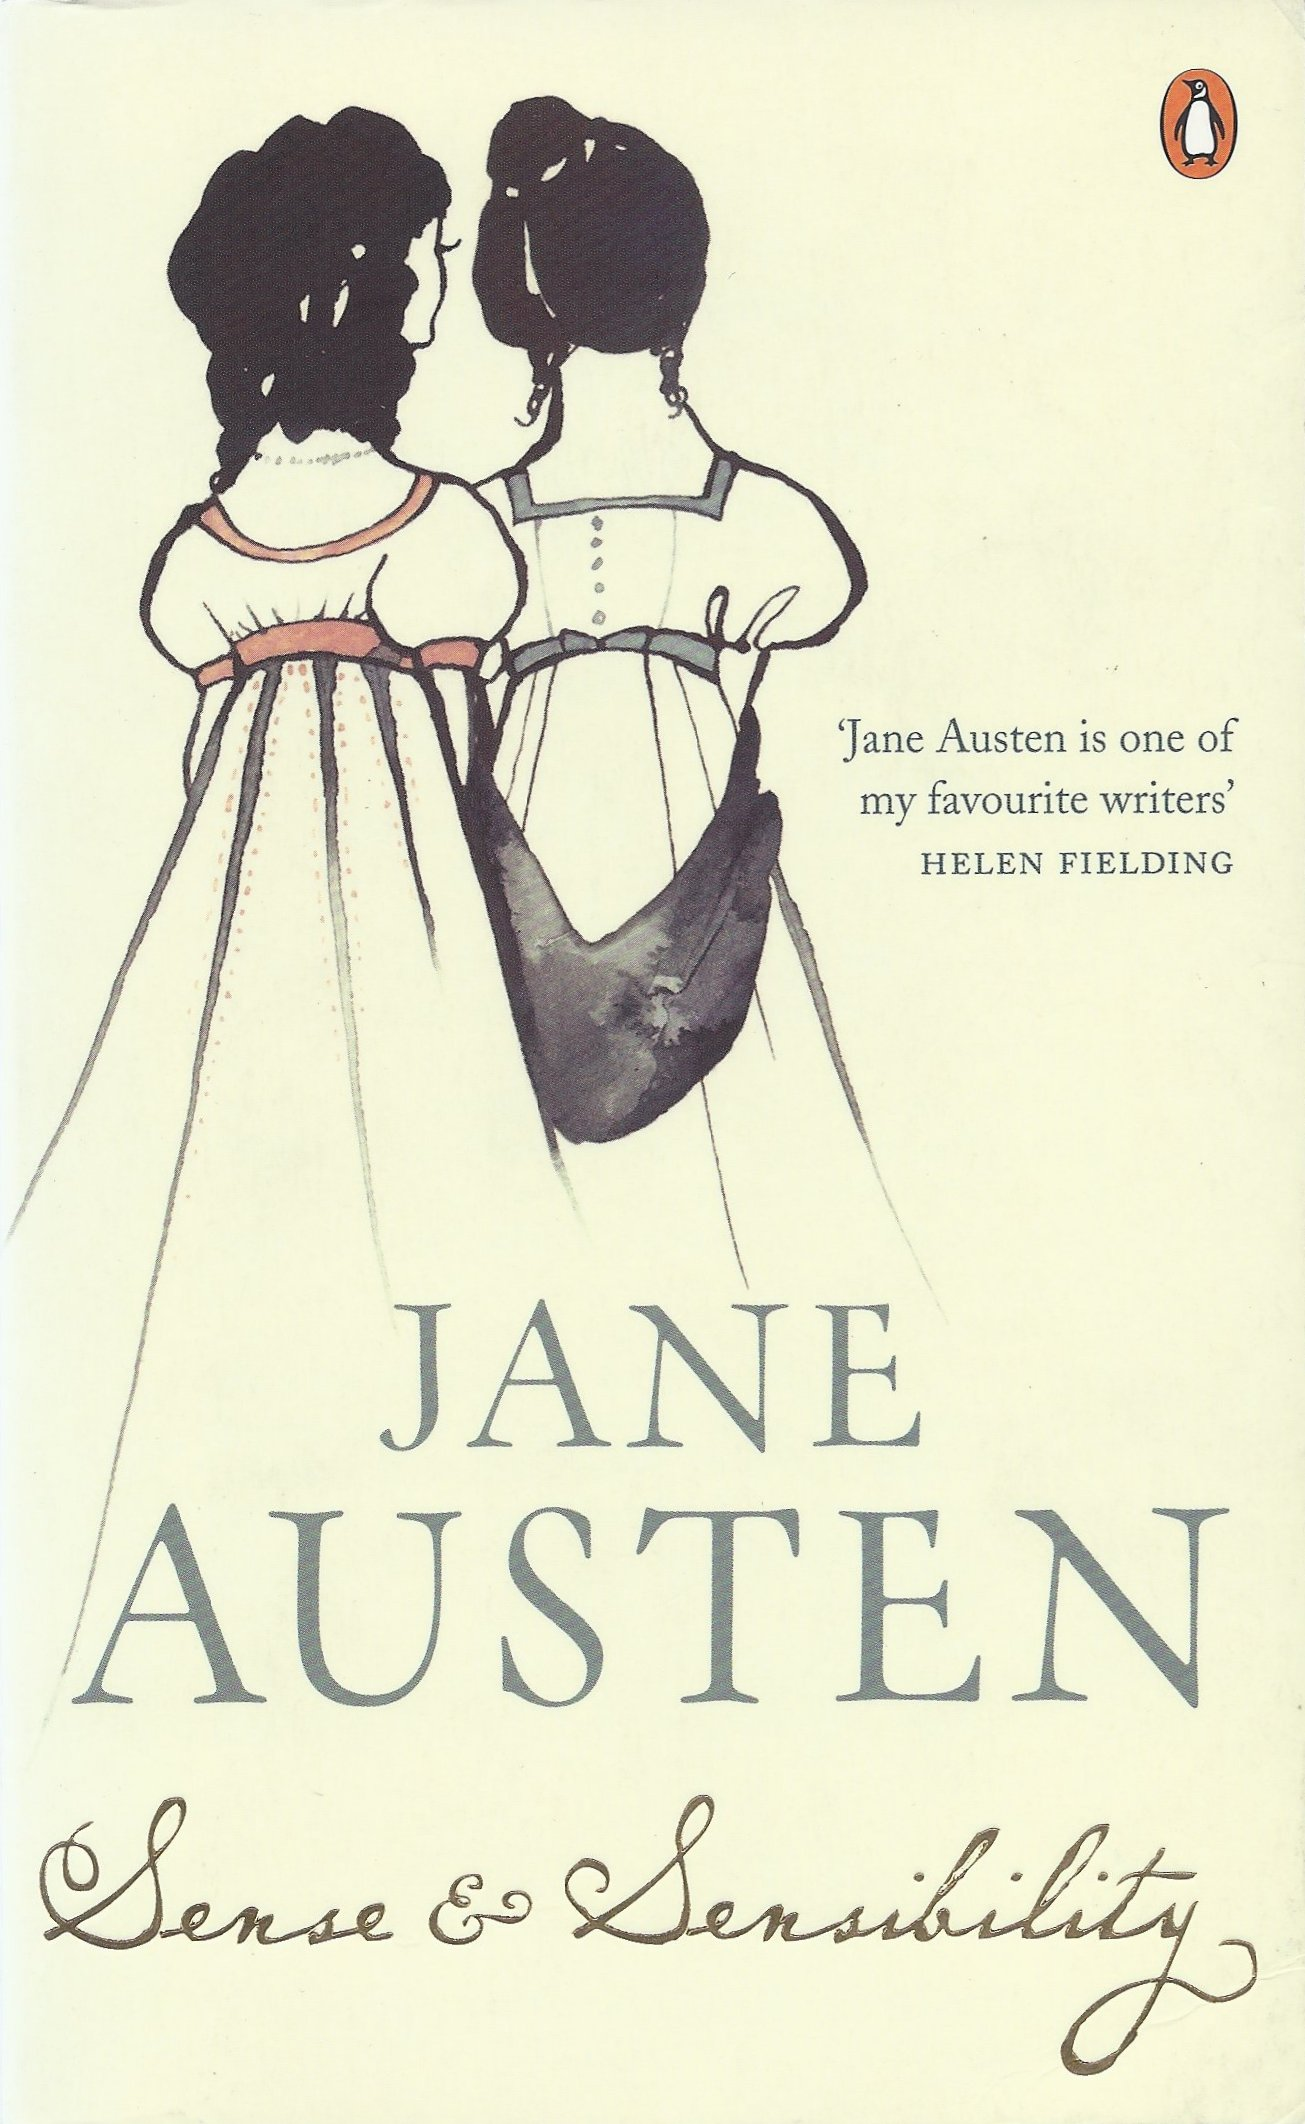 Sense and Sensibility Book Cover at https://theliterarysisters.wordpress.com/2015/08/31/sense-and-sensibility-by-jane-austen/